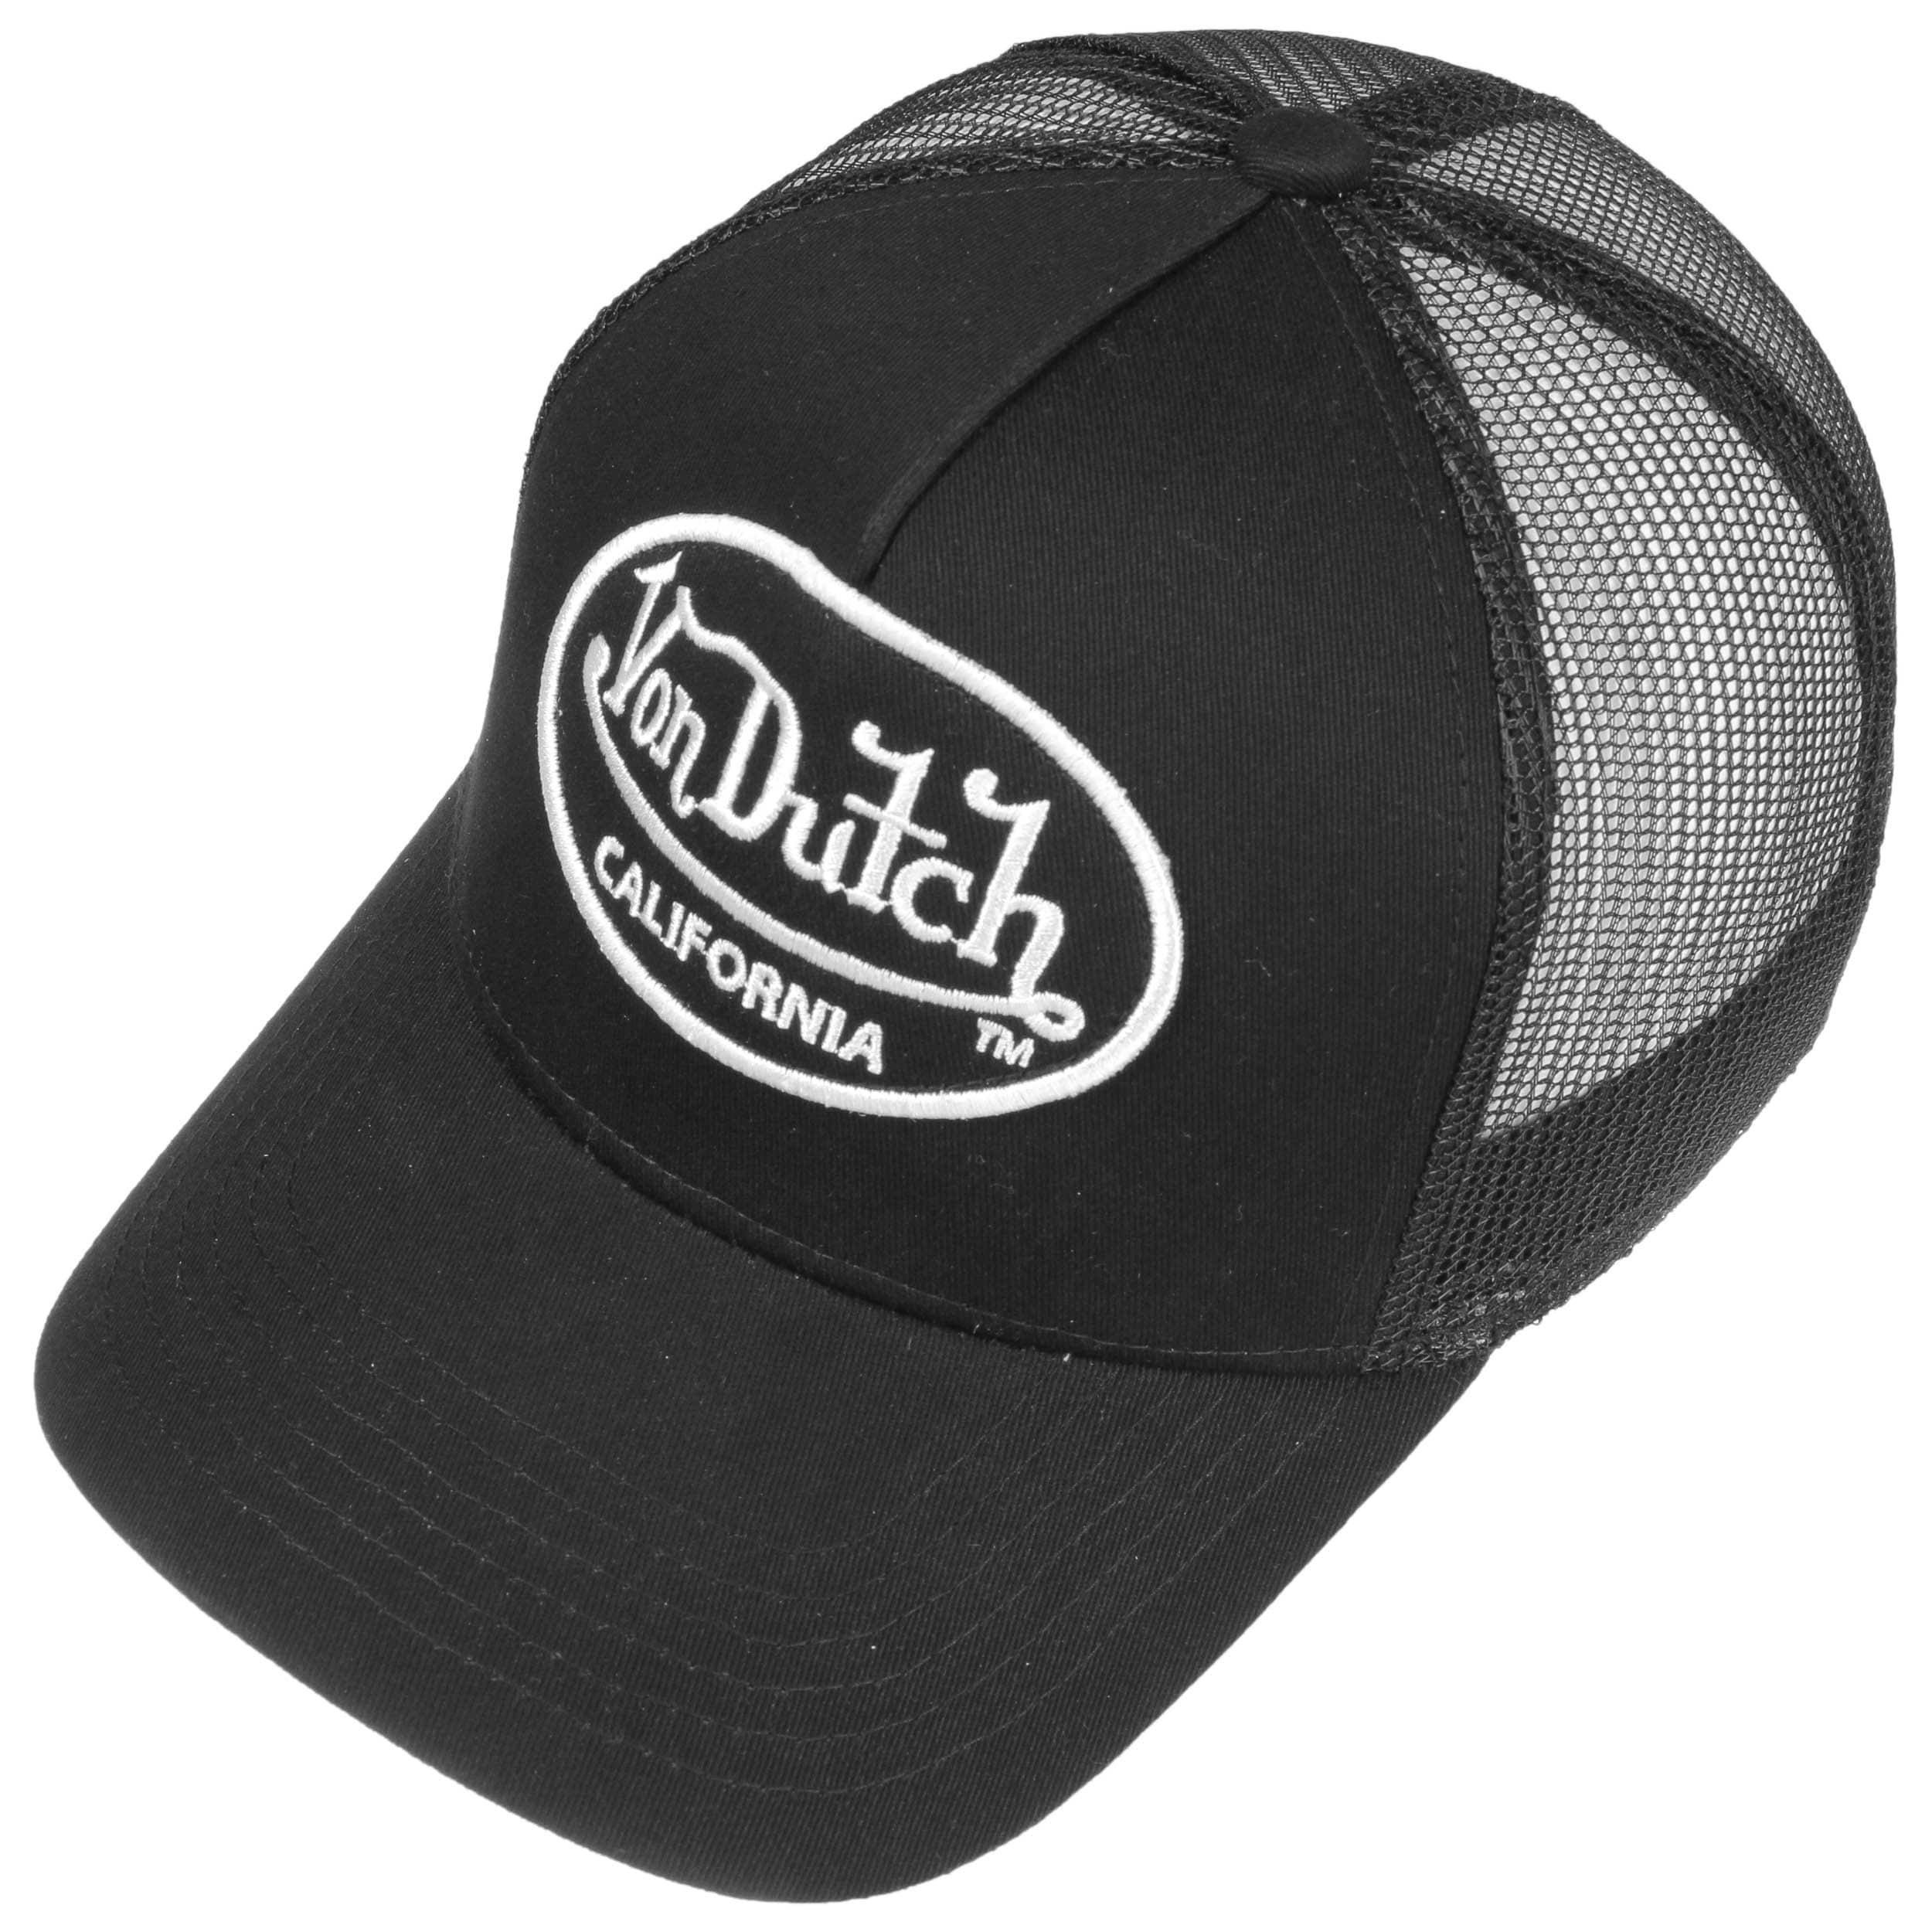 ... Gorra Trucker OG by Von Dutch - negro 1 ... 4d8ead232a1